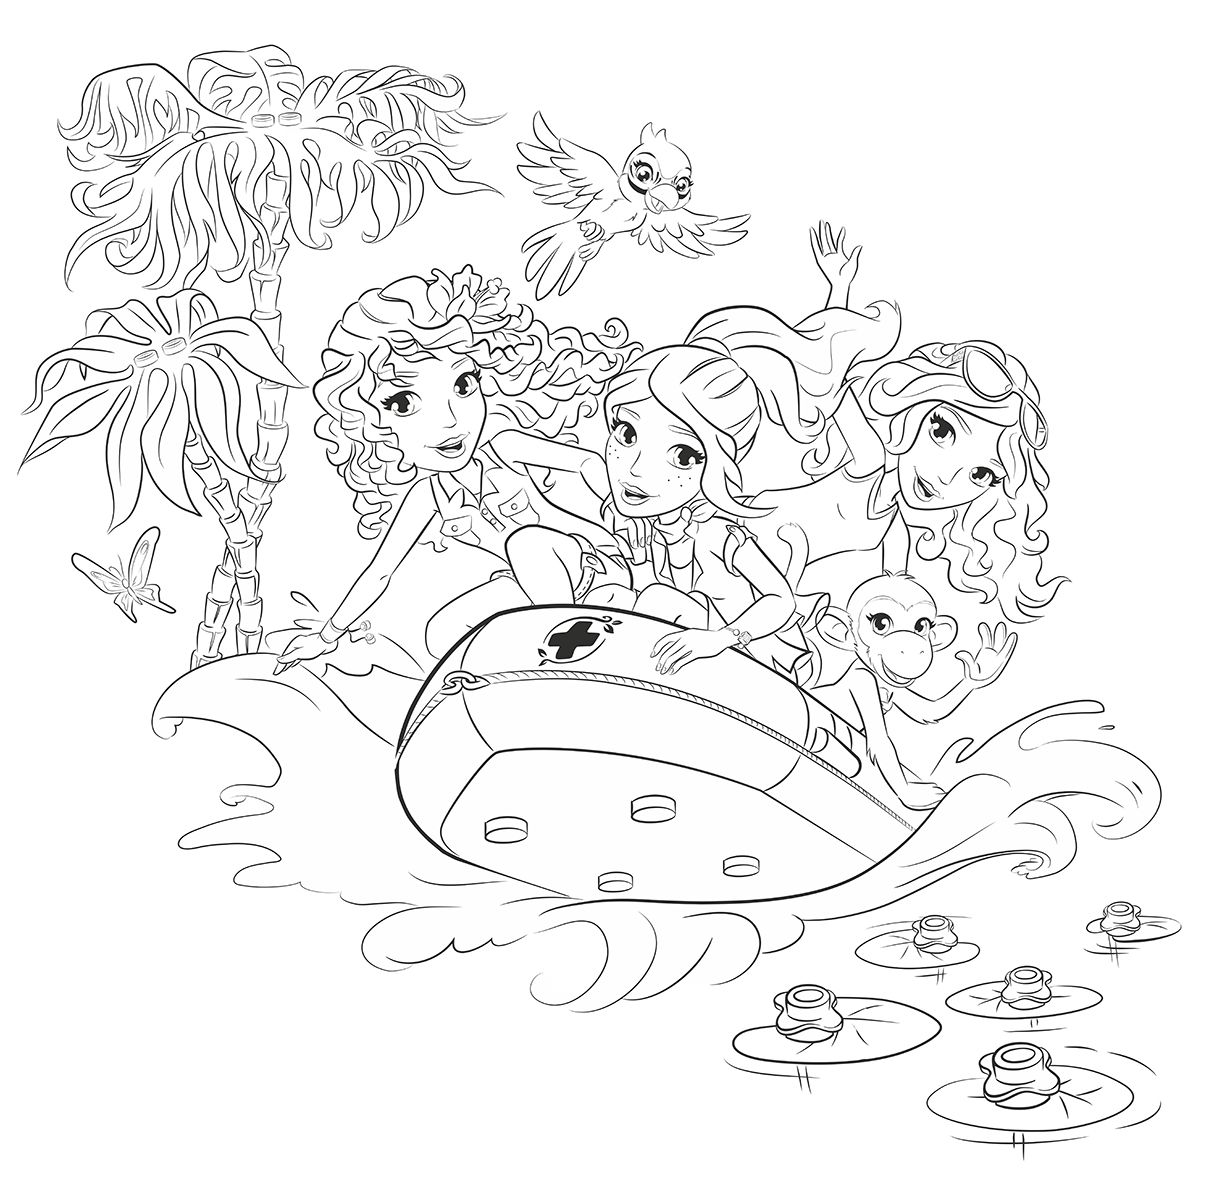 a z coloring pages AZ Coloring   Tons of Free Coloring Pages | Crafts'n stuff for the  a z coloring pages